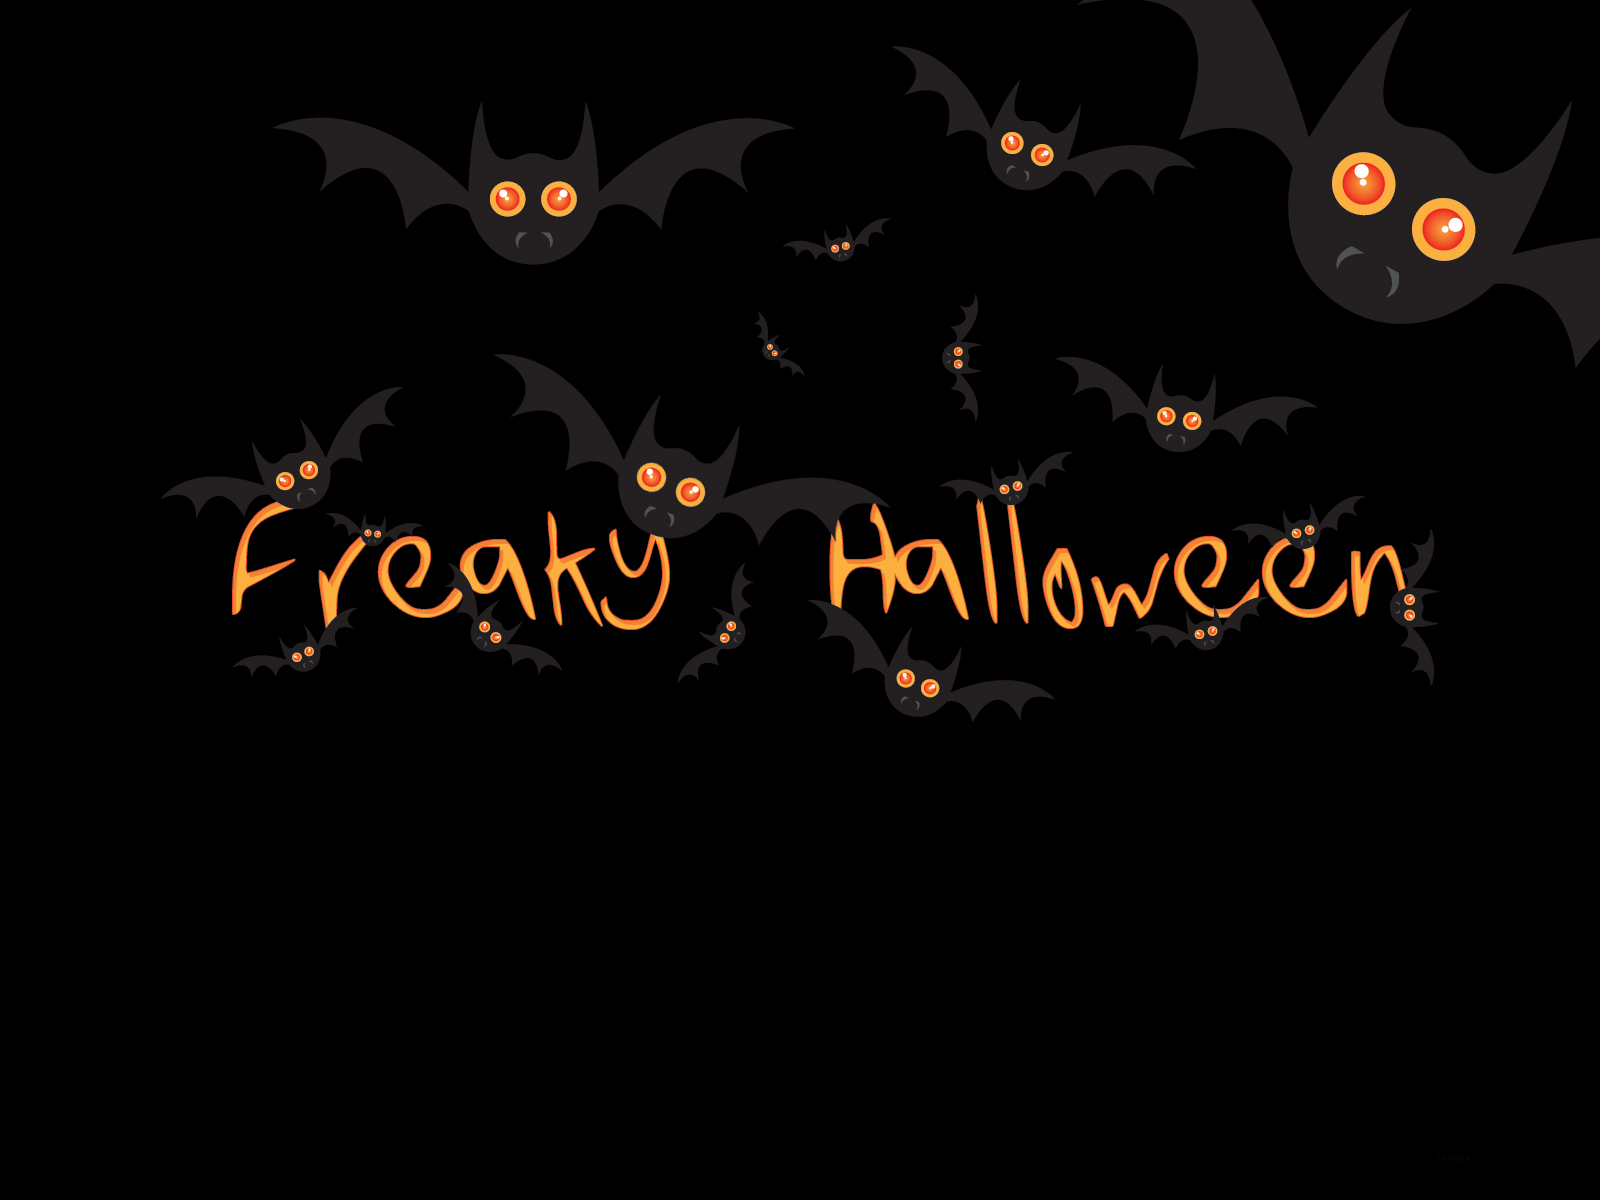 Moving Halloween Wallpapers